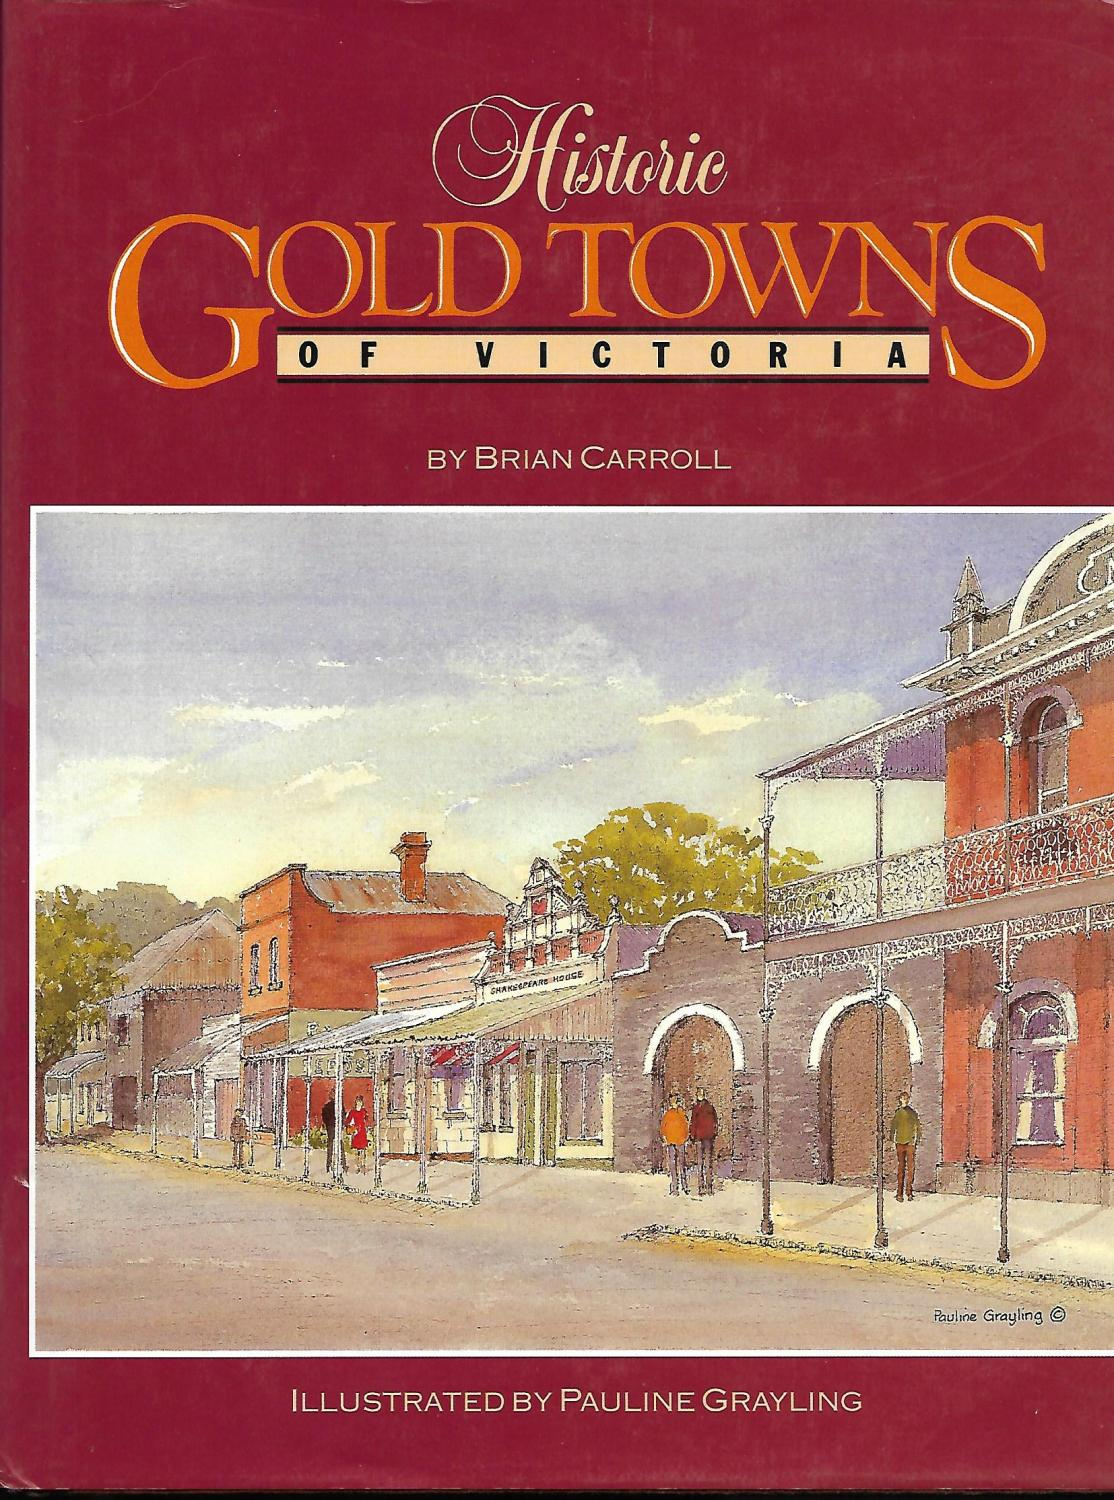 Historic Gold Towns of Victoria